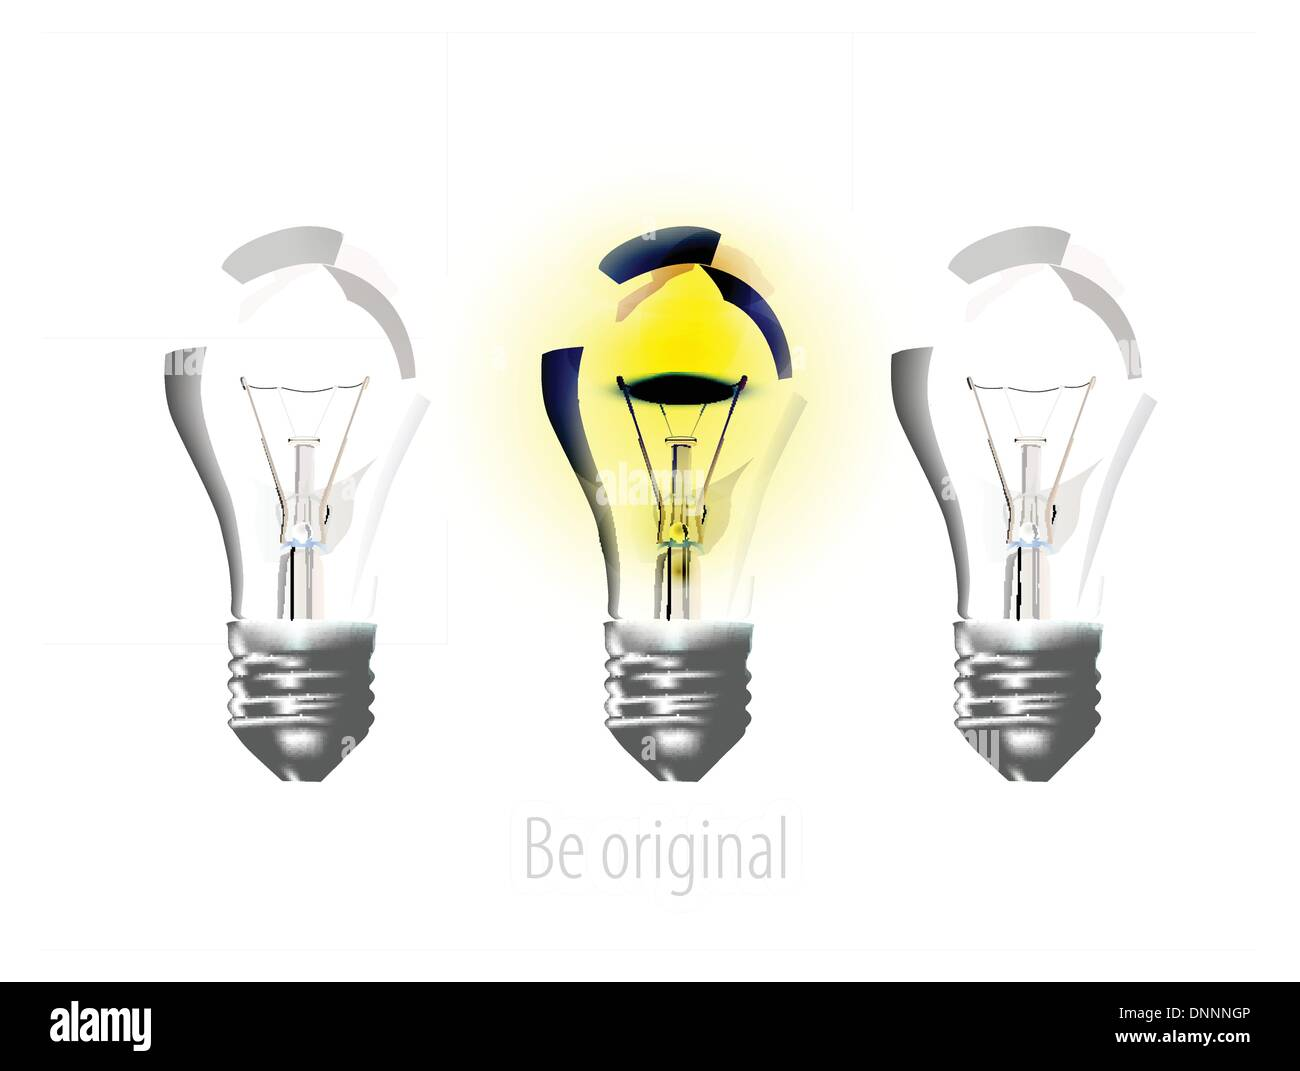 Realistic lamps on white - Stock Image